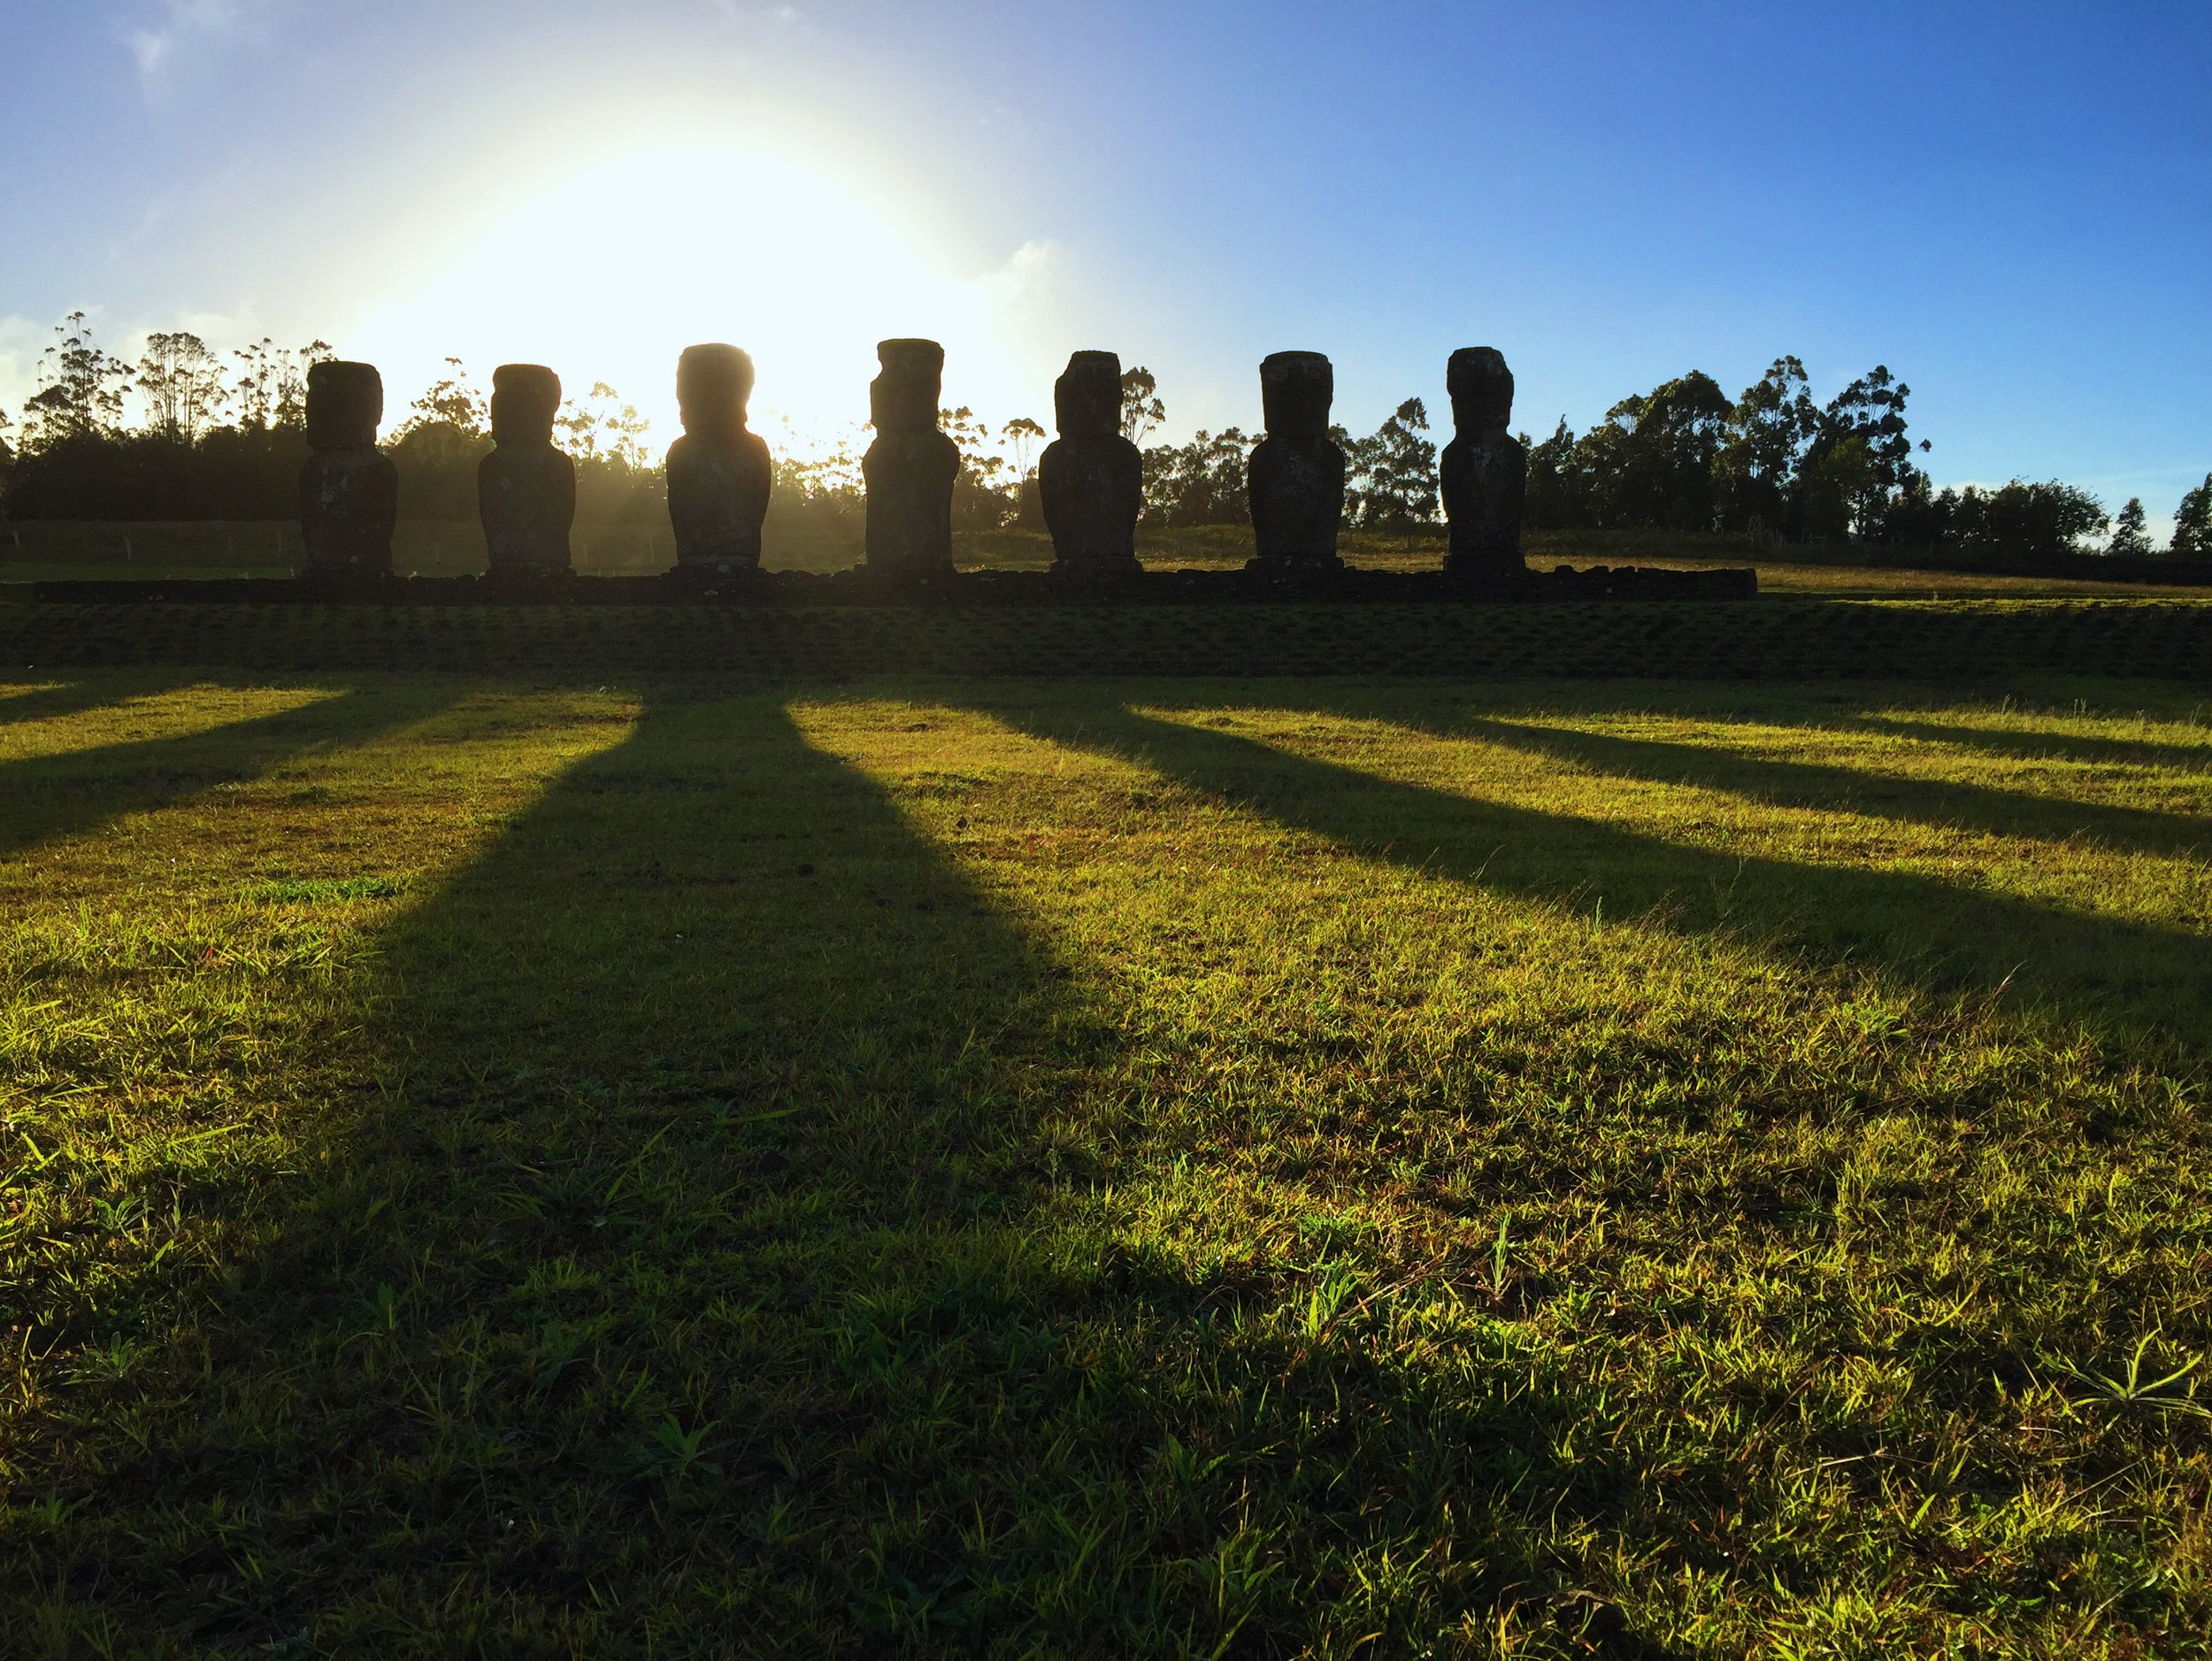 Ahu Akivi is a giant seasonal sundial, with its back to the sunrise on the Autumn Equinox and facing sunset on the Spring Equinox. It's also the only one that is inland and facing the sea.